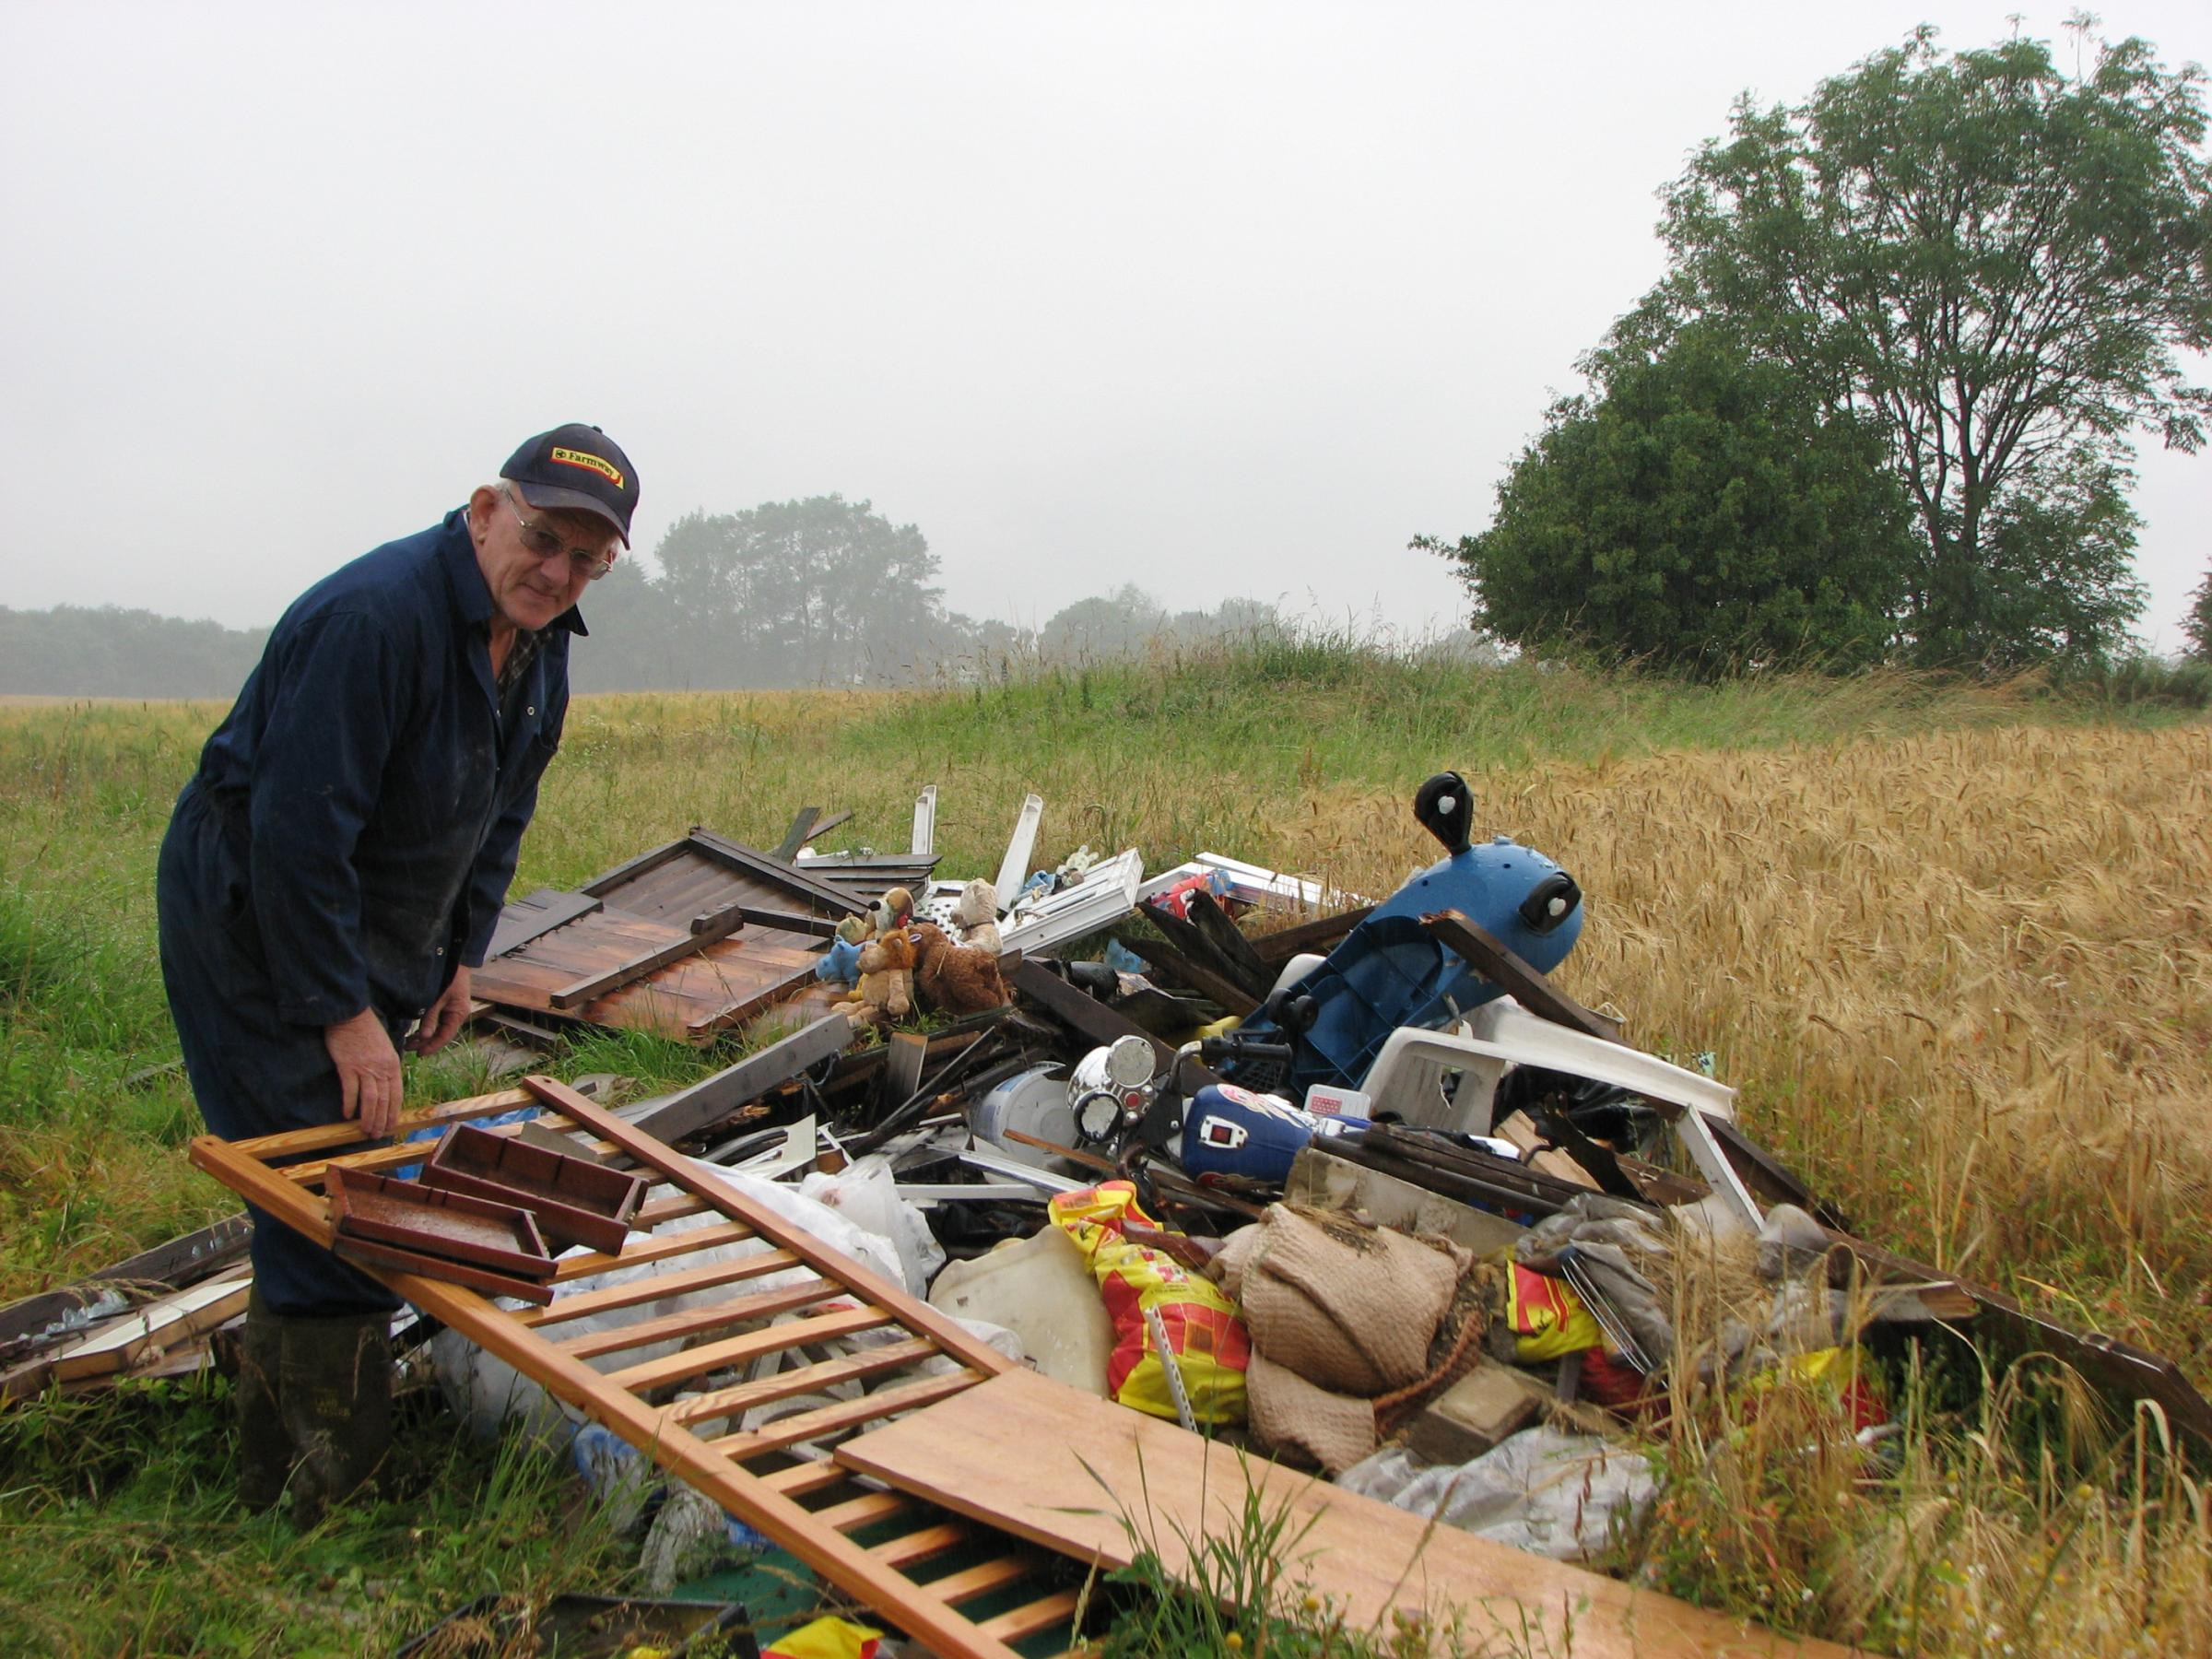 MESS: Robert Campbell farms at Stokesley and is one of the many farmers who regularly find waste dumped on his land